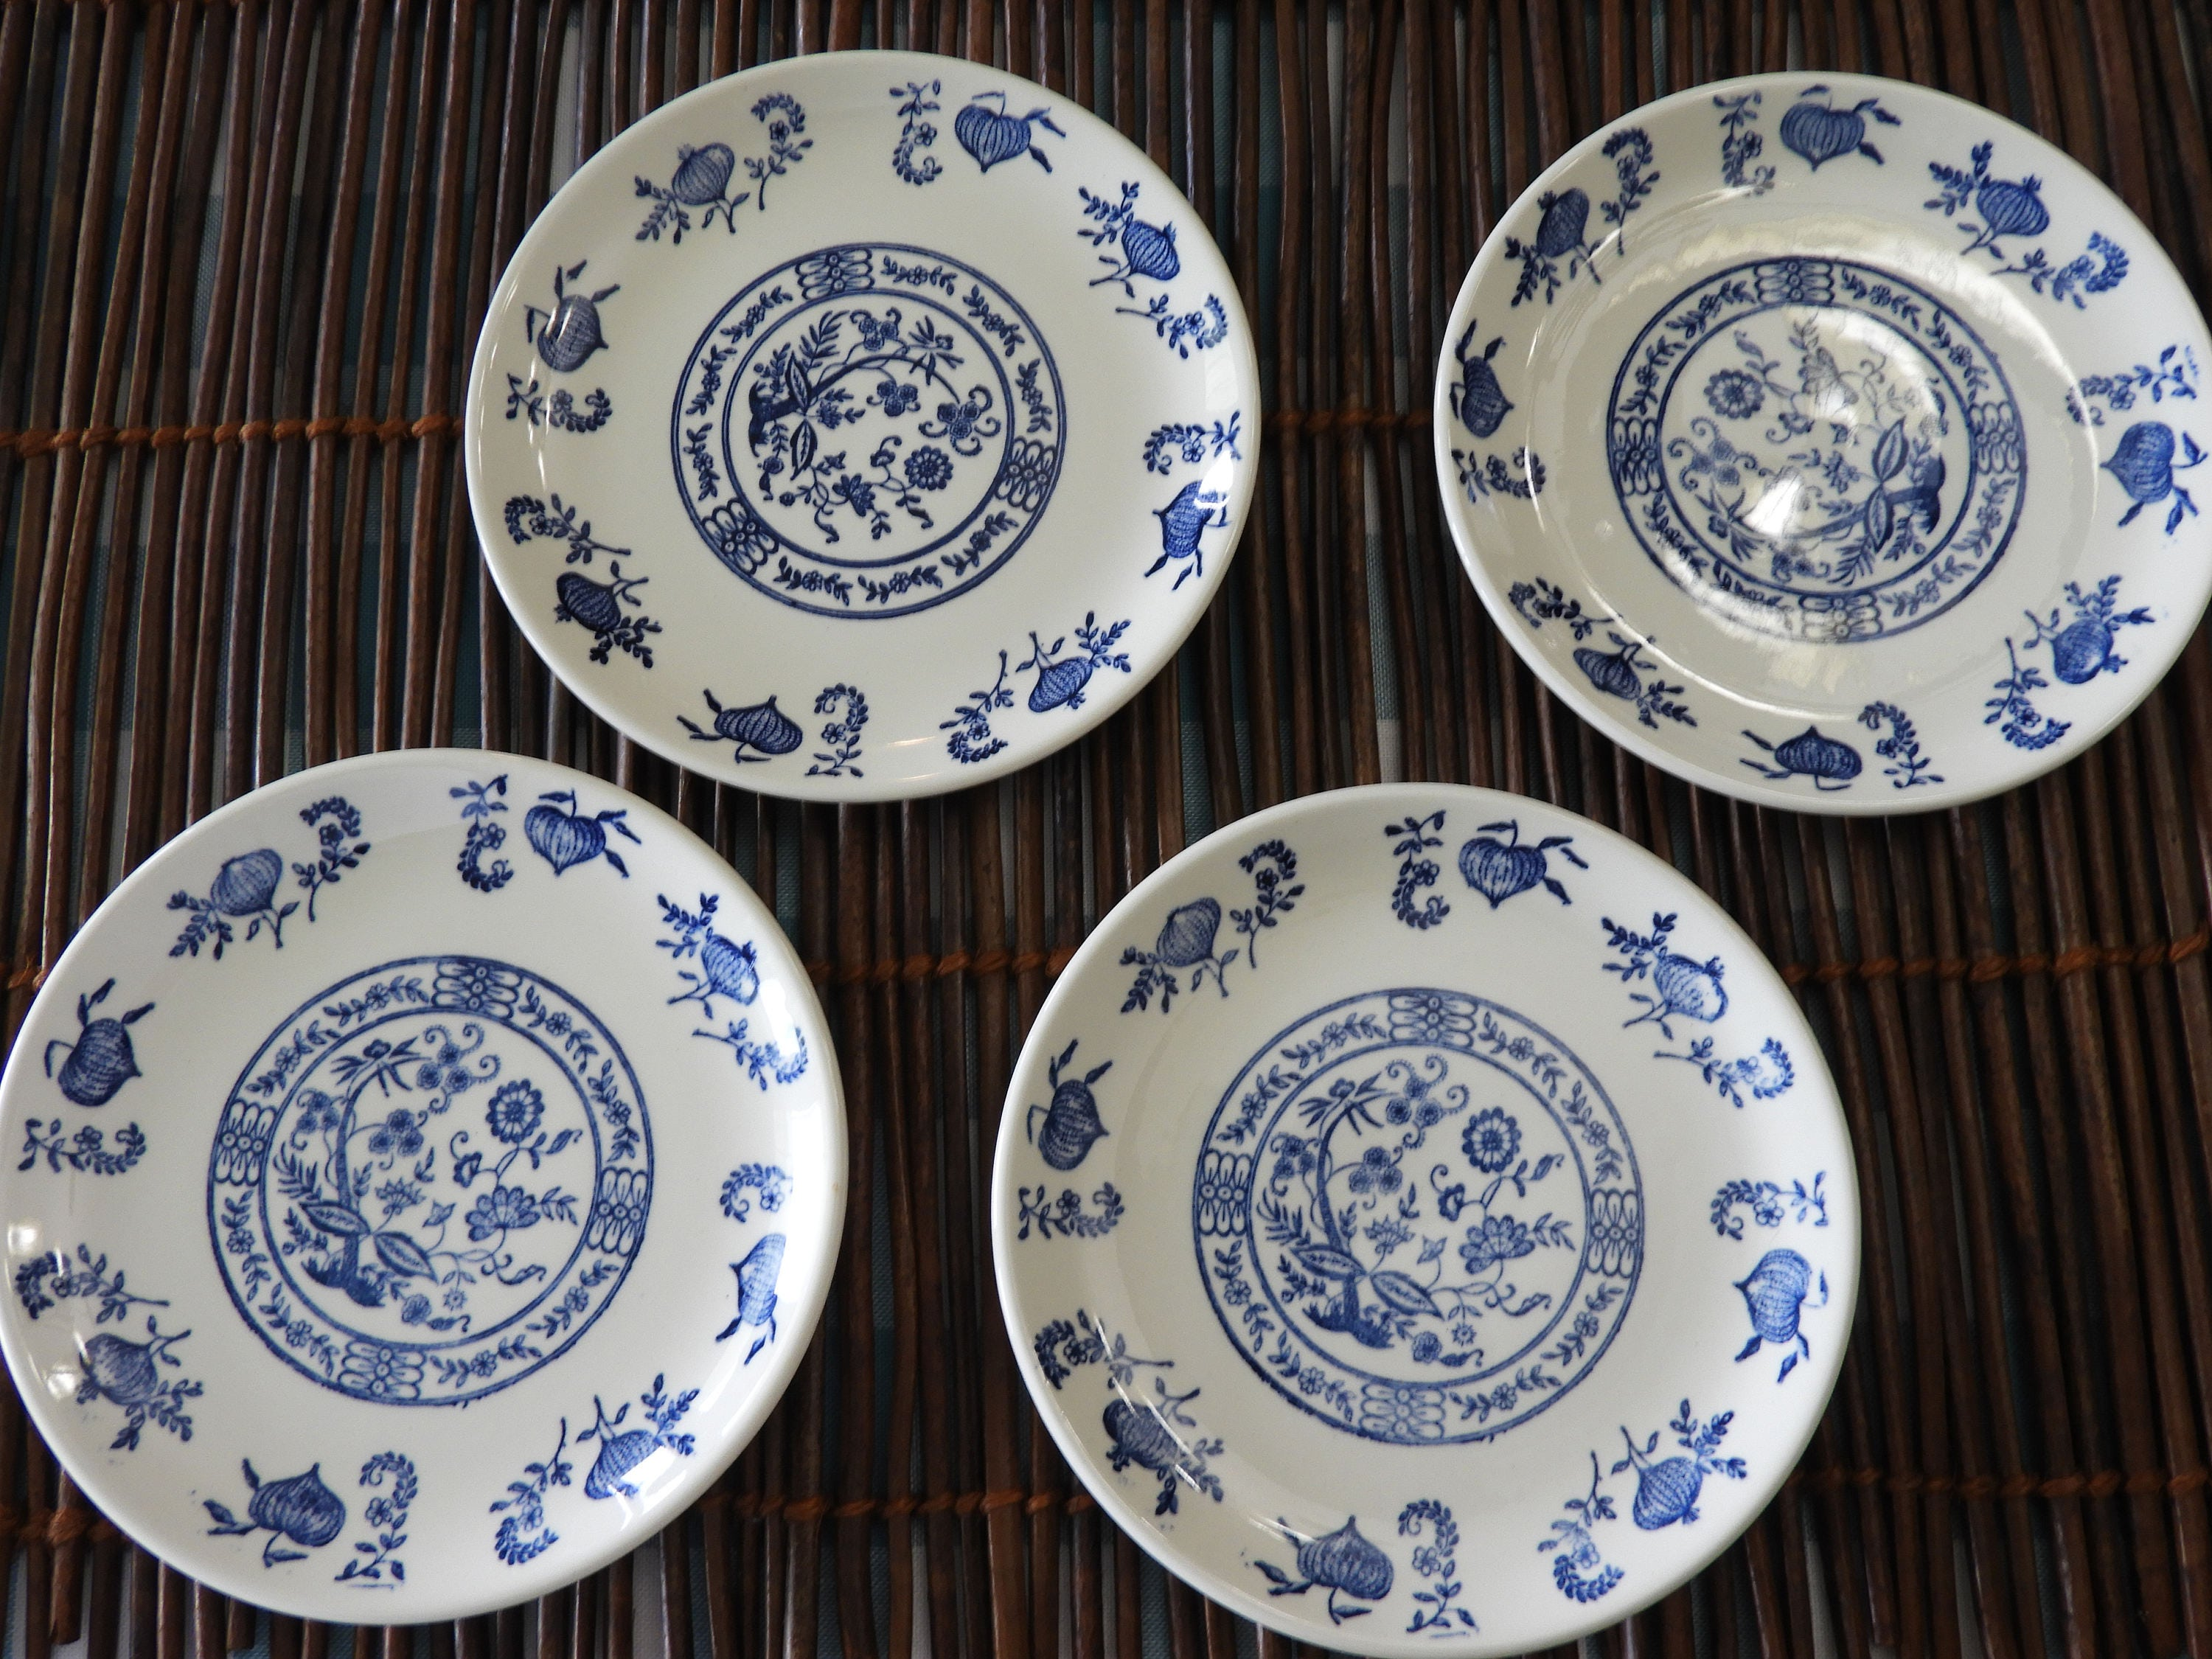 1 & Vintage Blue Onion Tea Tile Saucers (4)Blue Dinnerware Plates ...